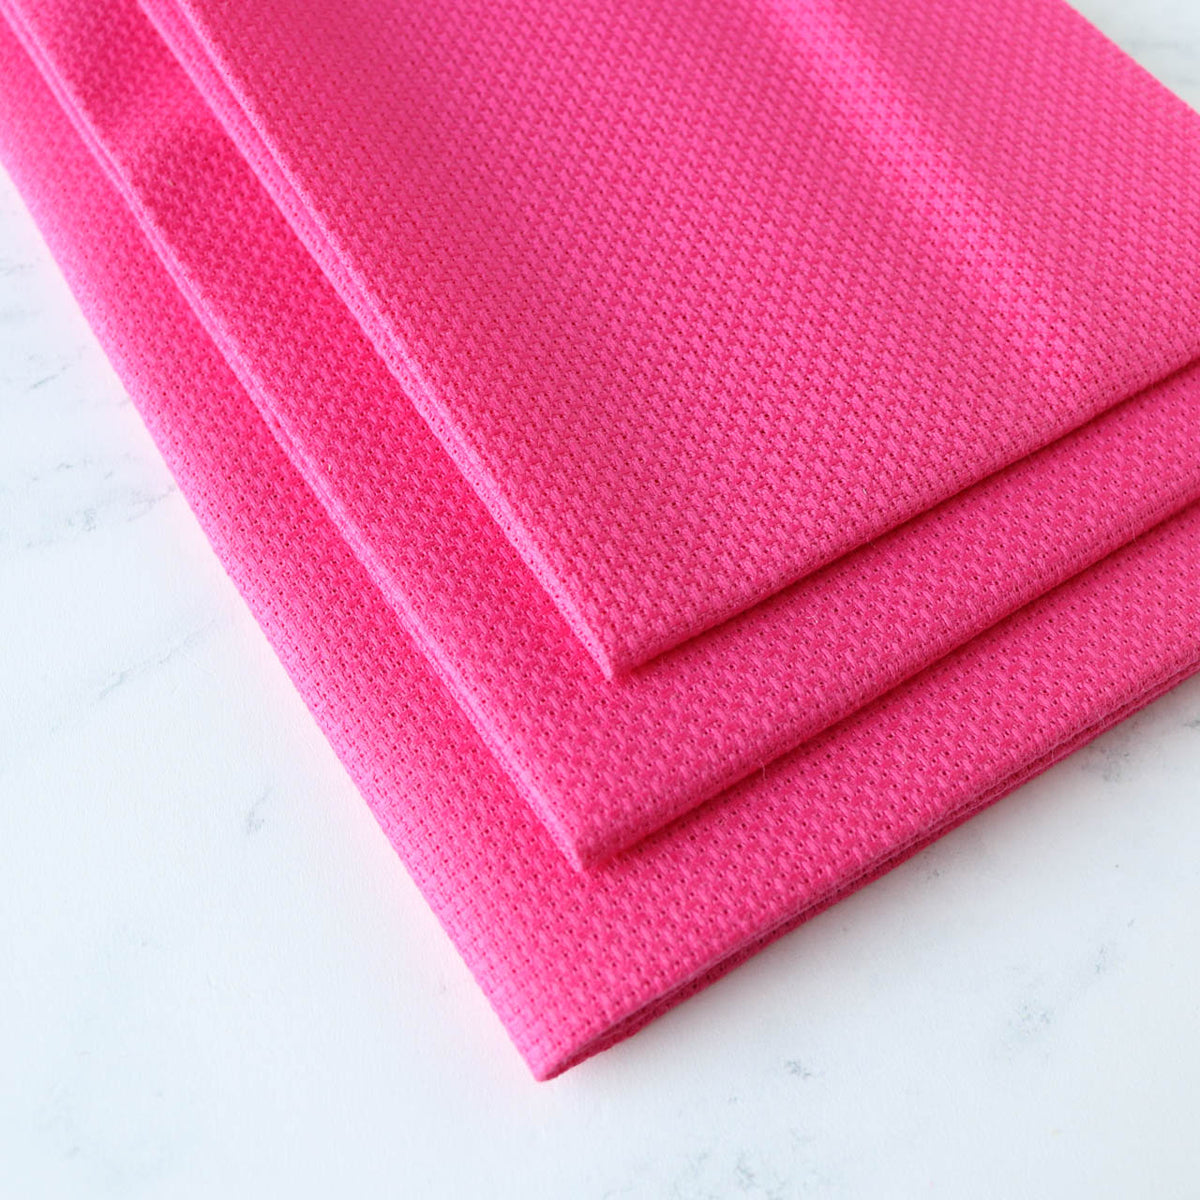 Raspberry Sorbet Cross Stitch Fabric - 14 Count